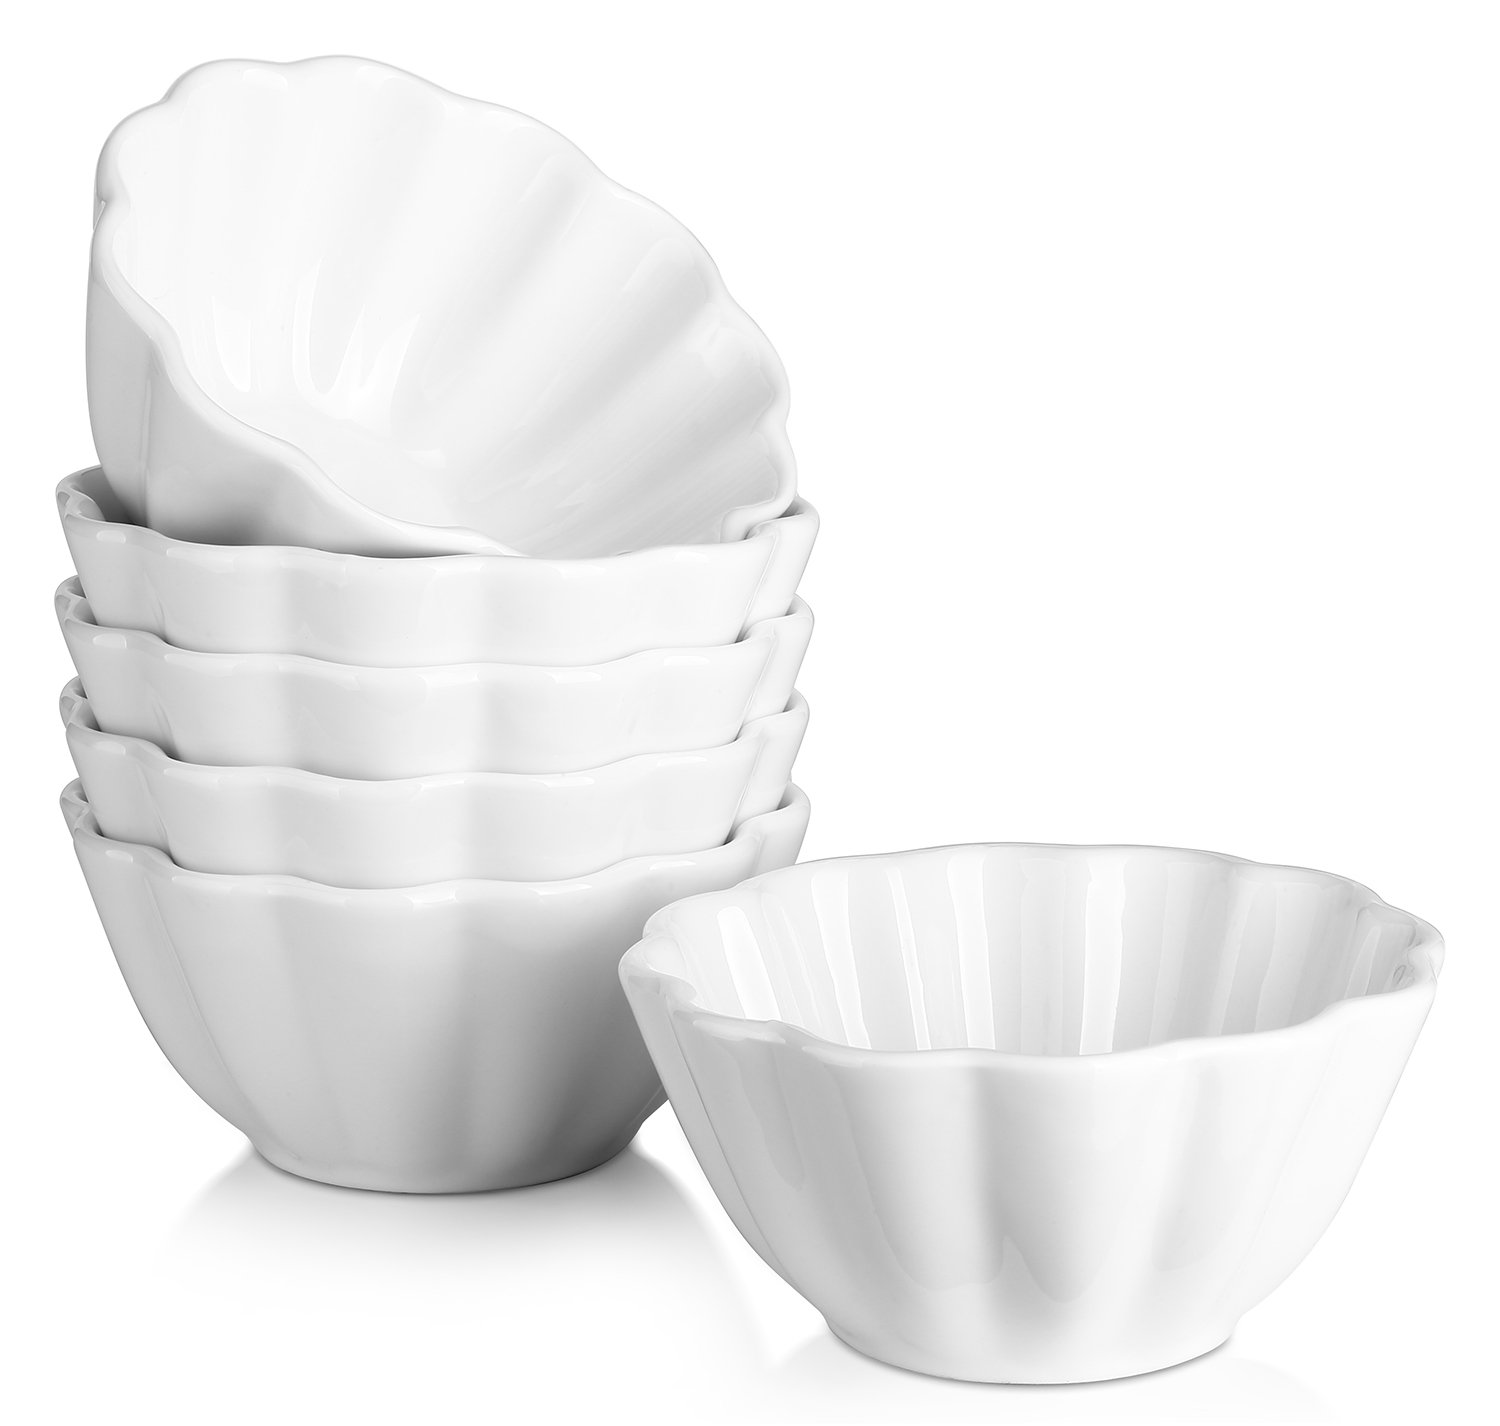 Dowan 4-oz Porcelain Ramekins/Serving Bowls for Souffle, Creme Brulee and Dipping Sauces, White, Set of 6